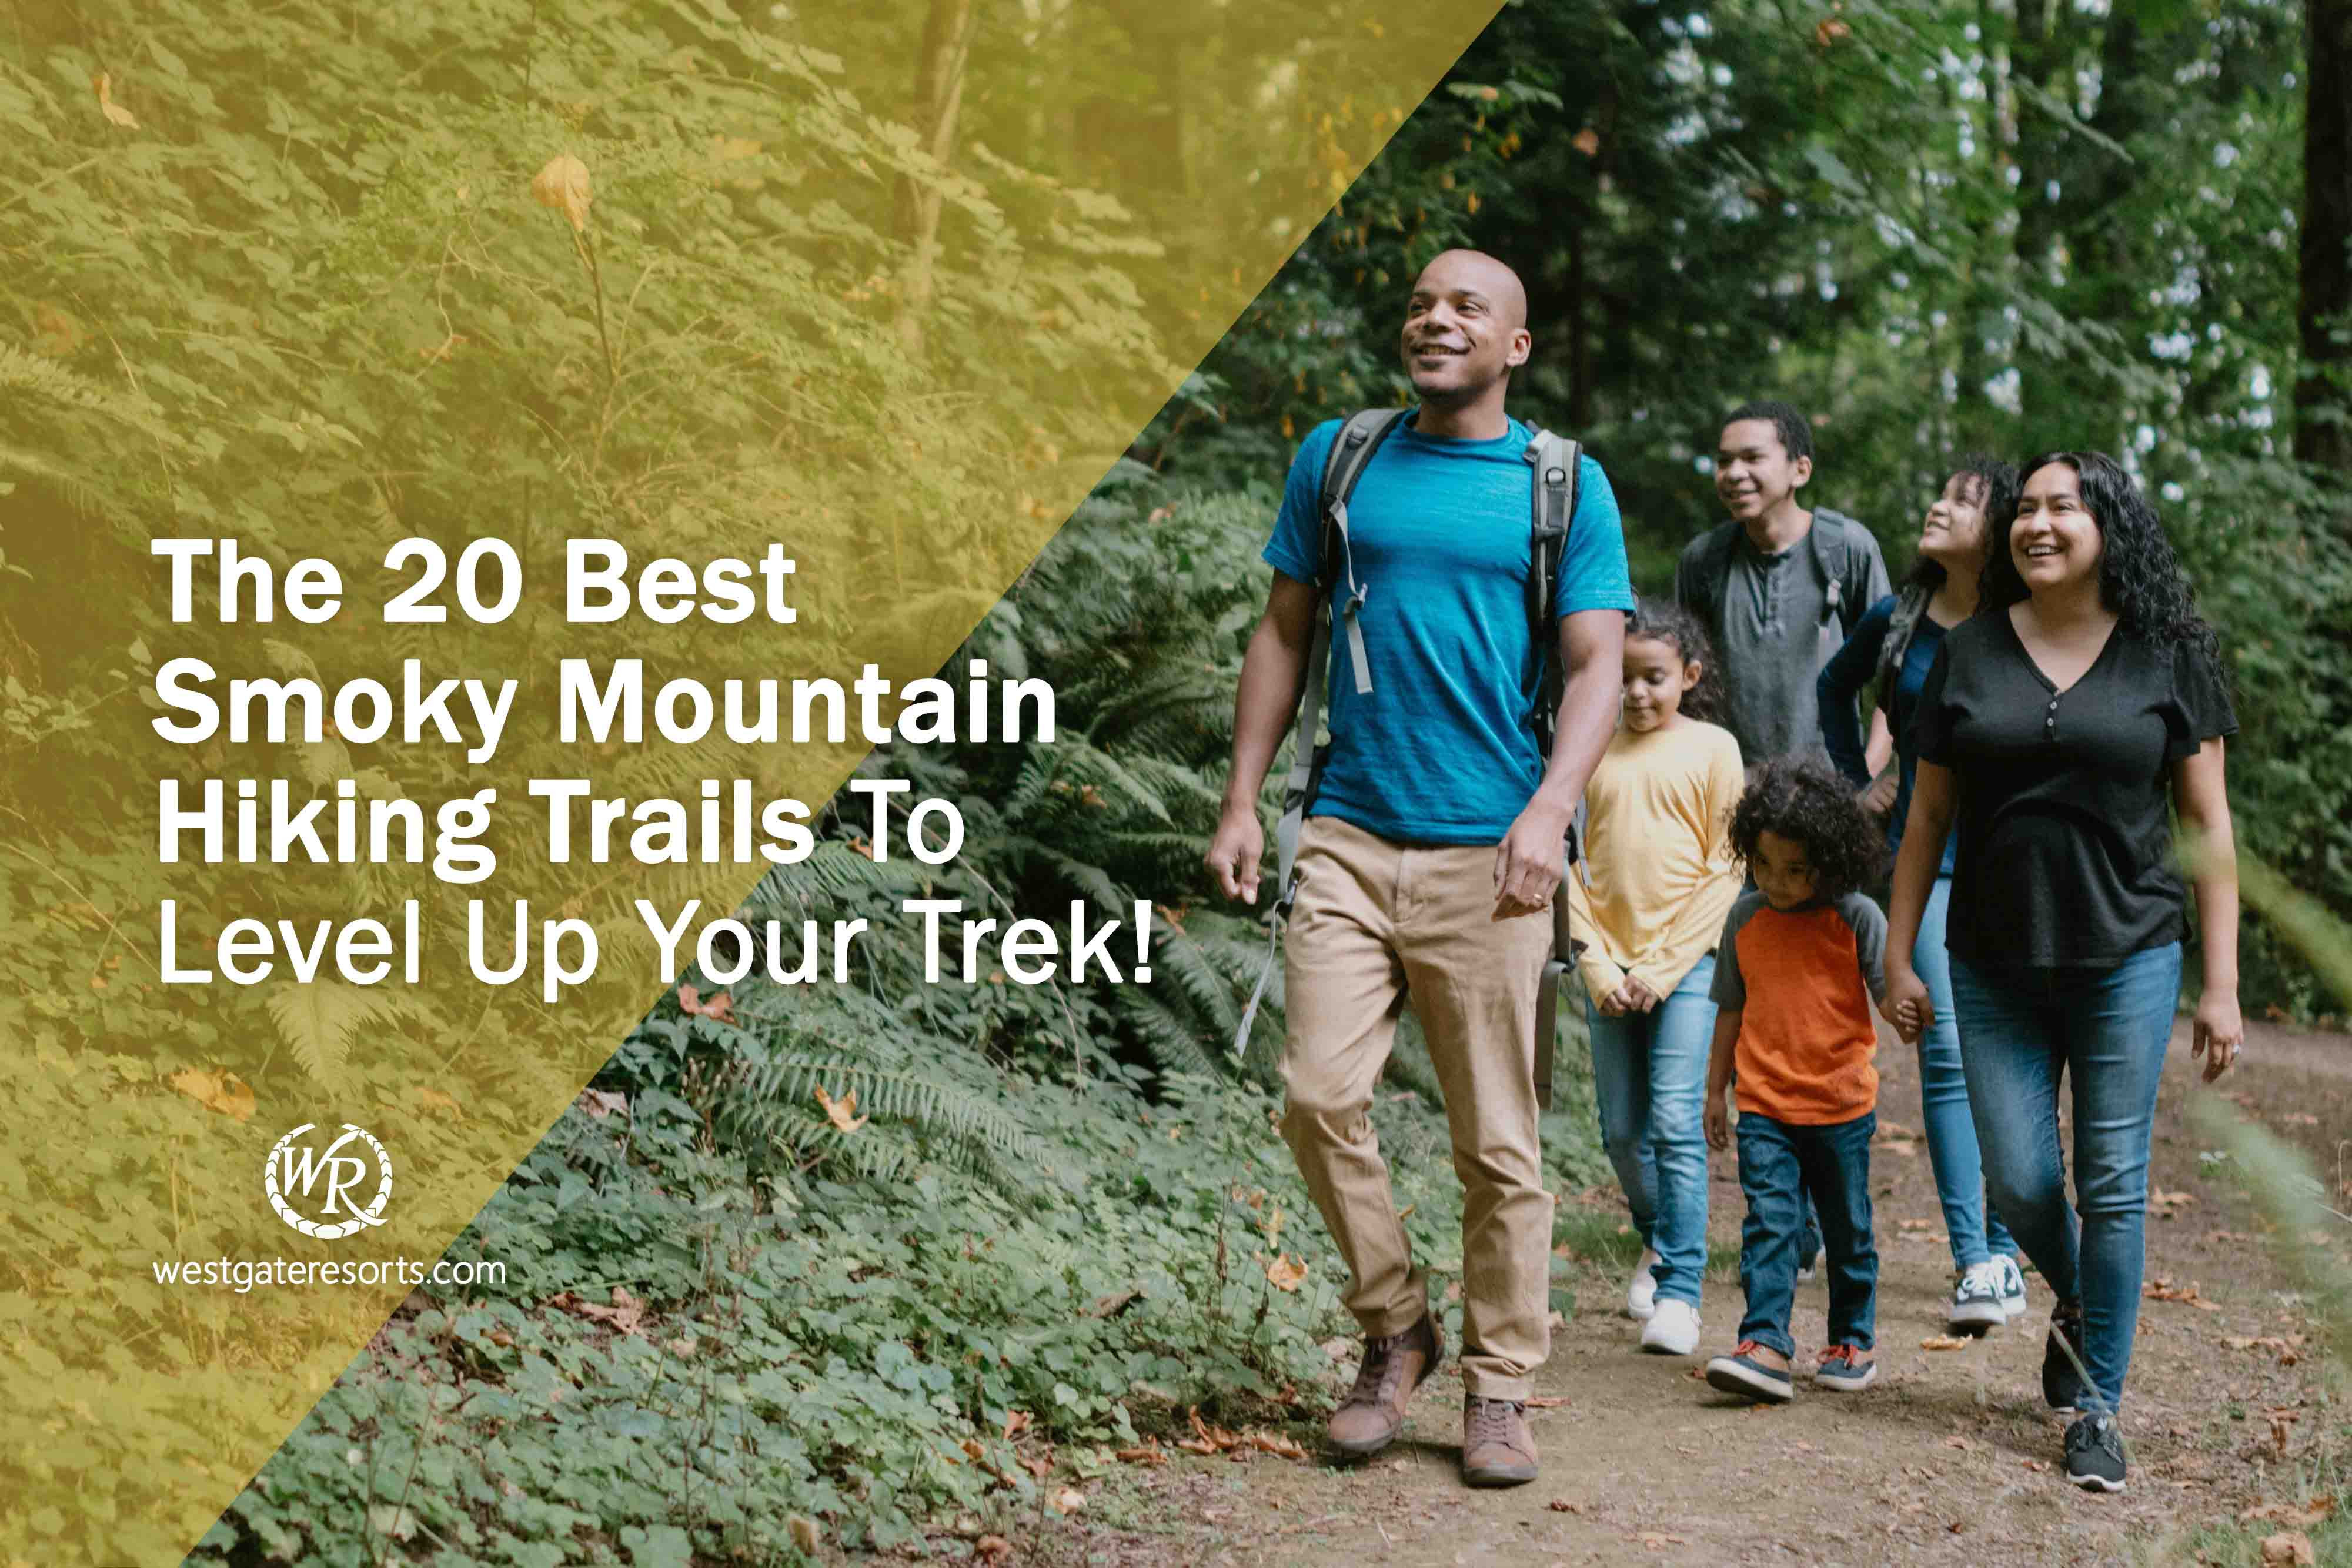 20 Best Smoky Mountain Hiking Trails To Level Up Your Trek!